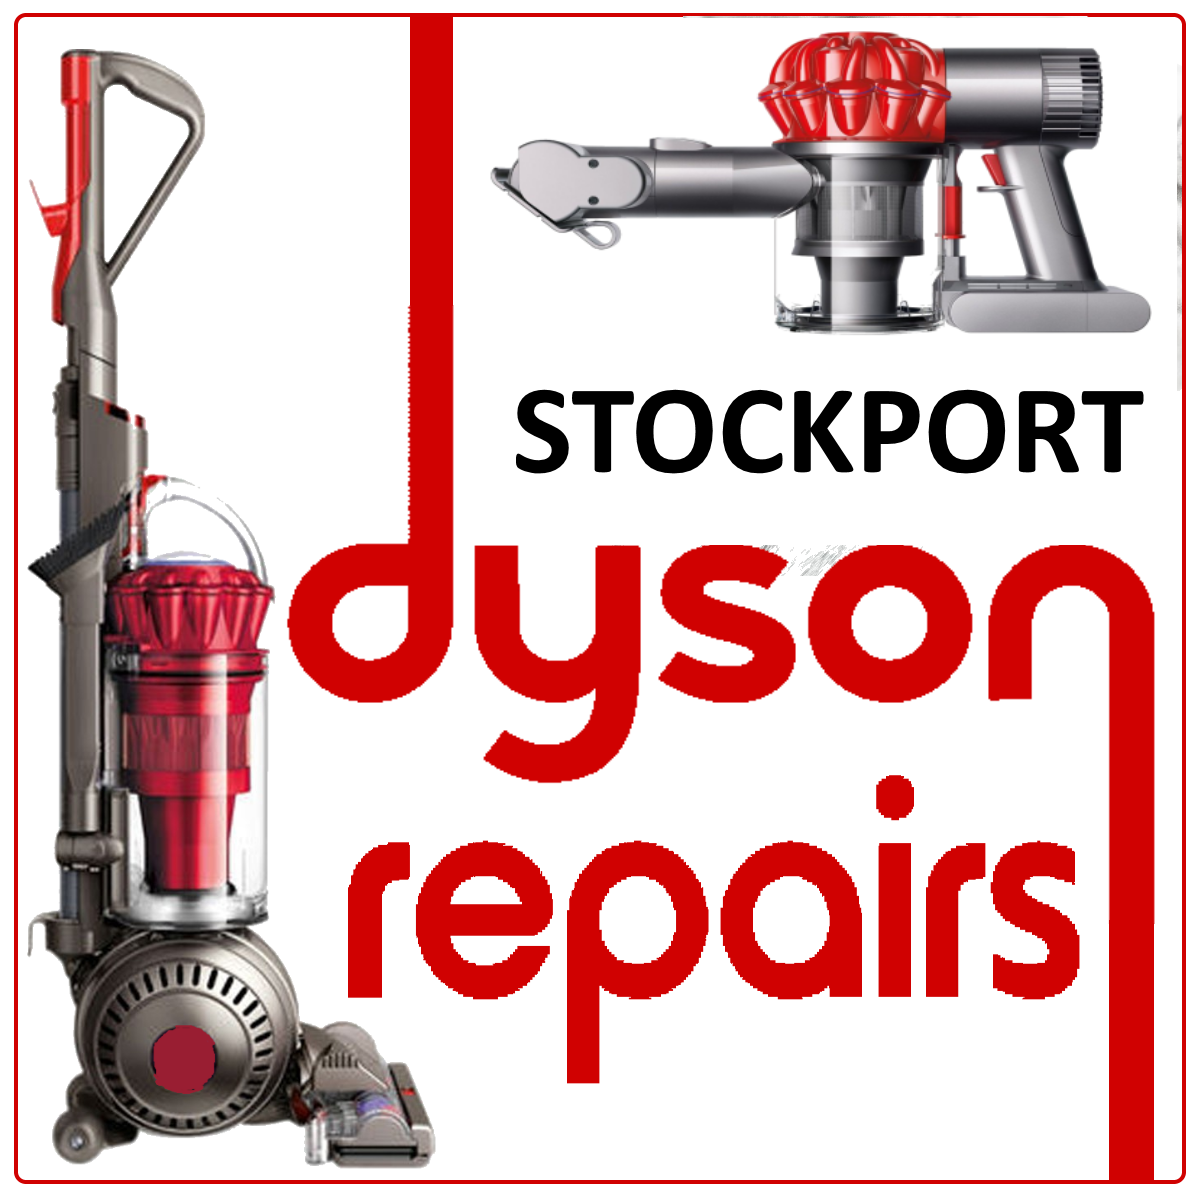 dyson repair Stockport main image